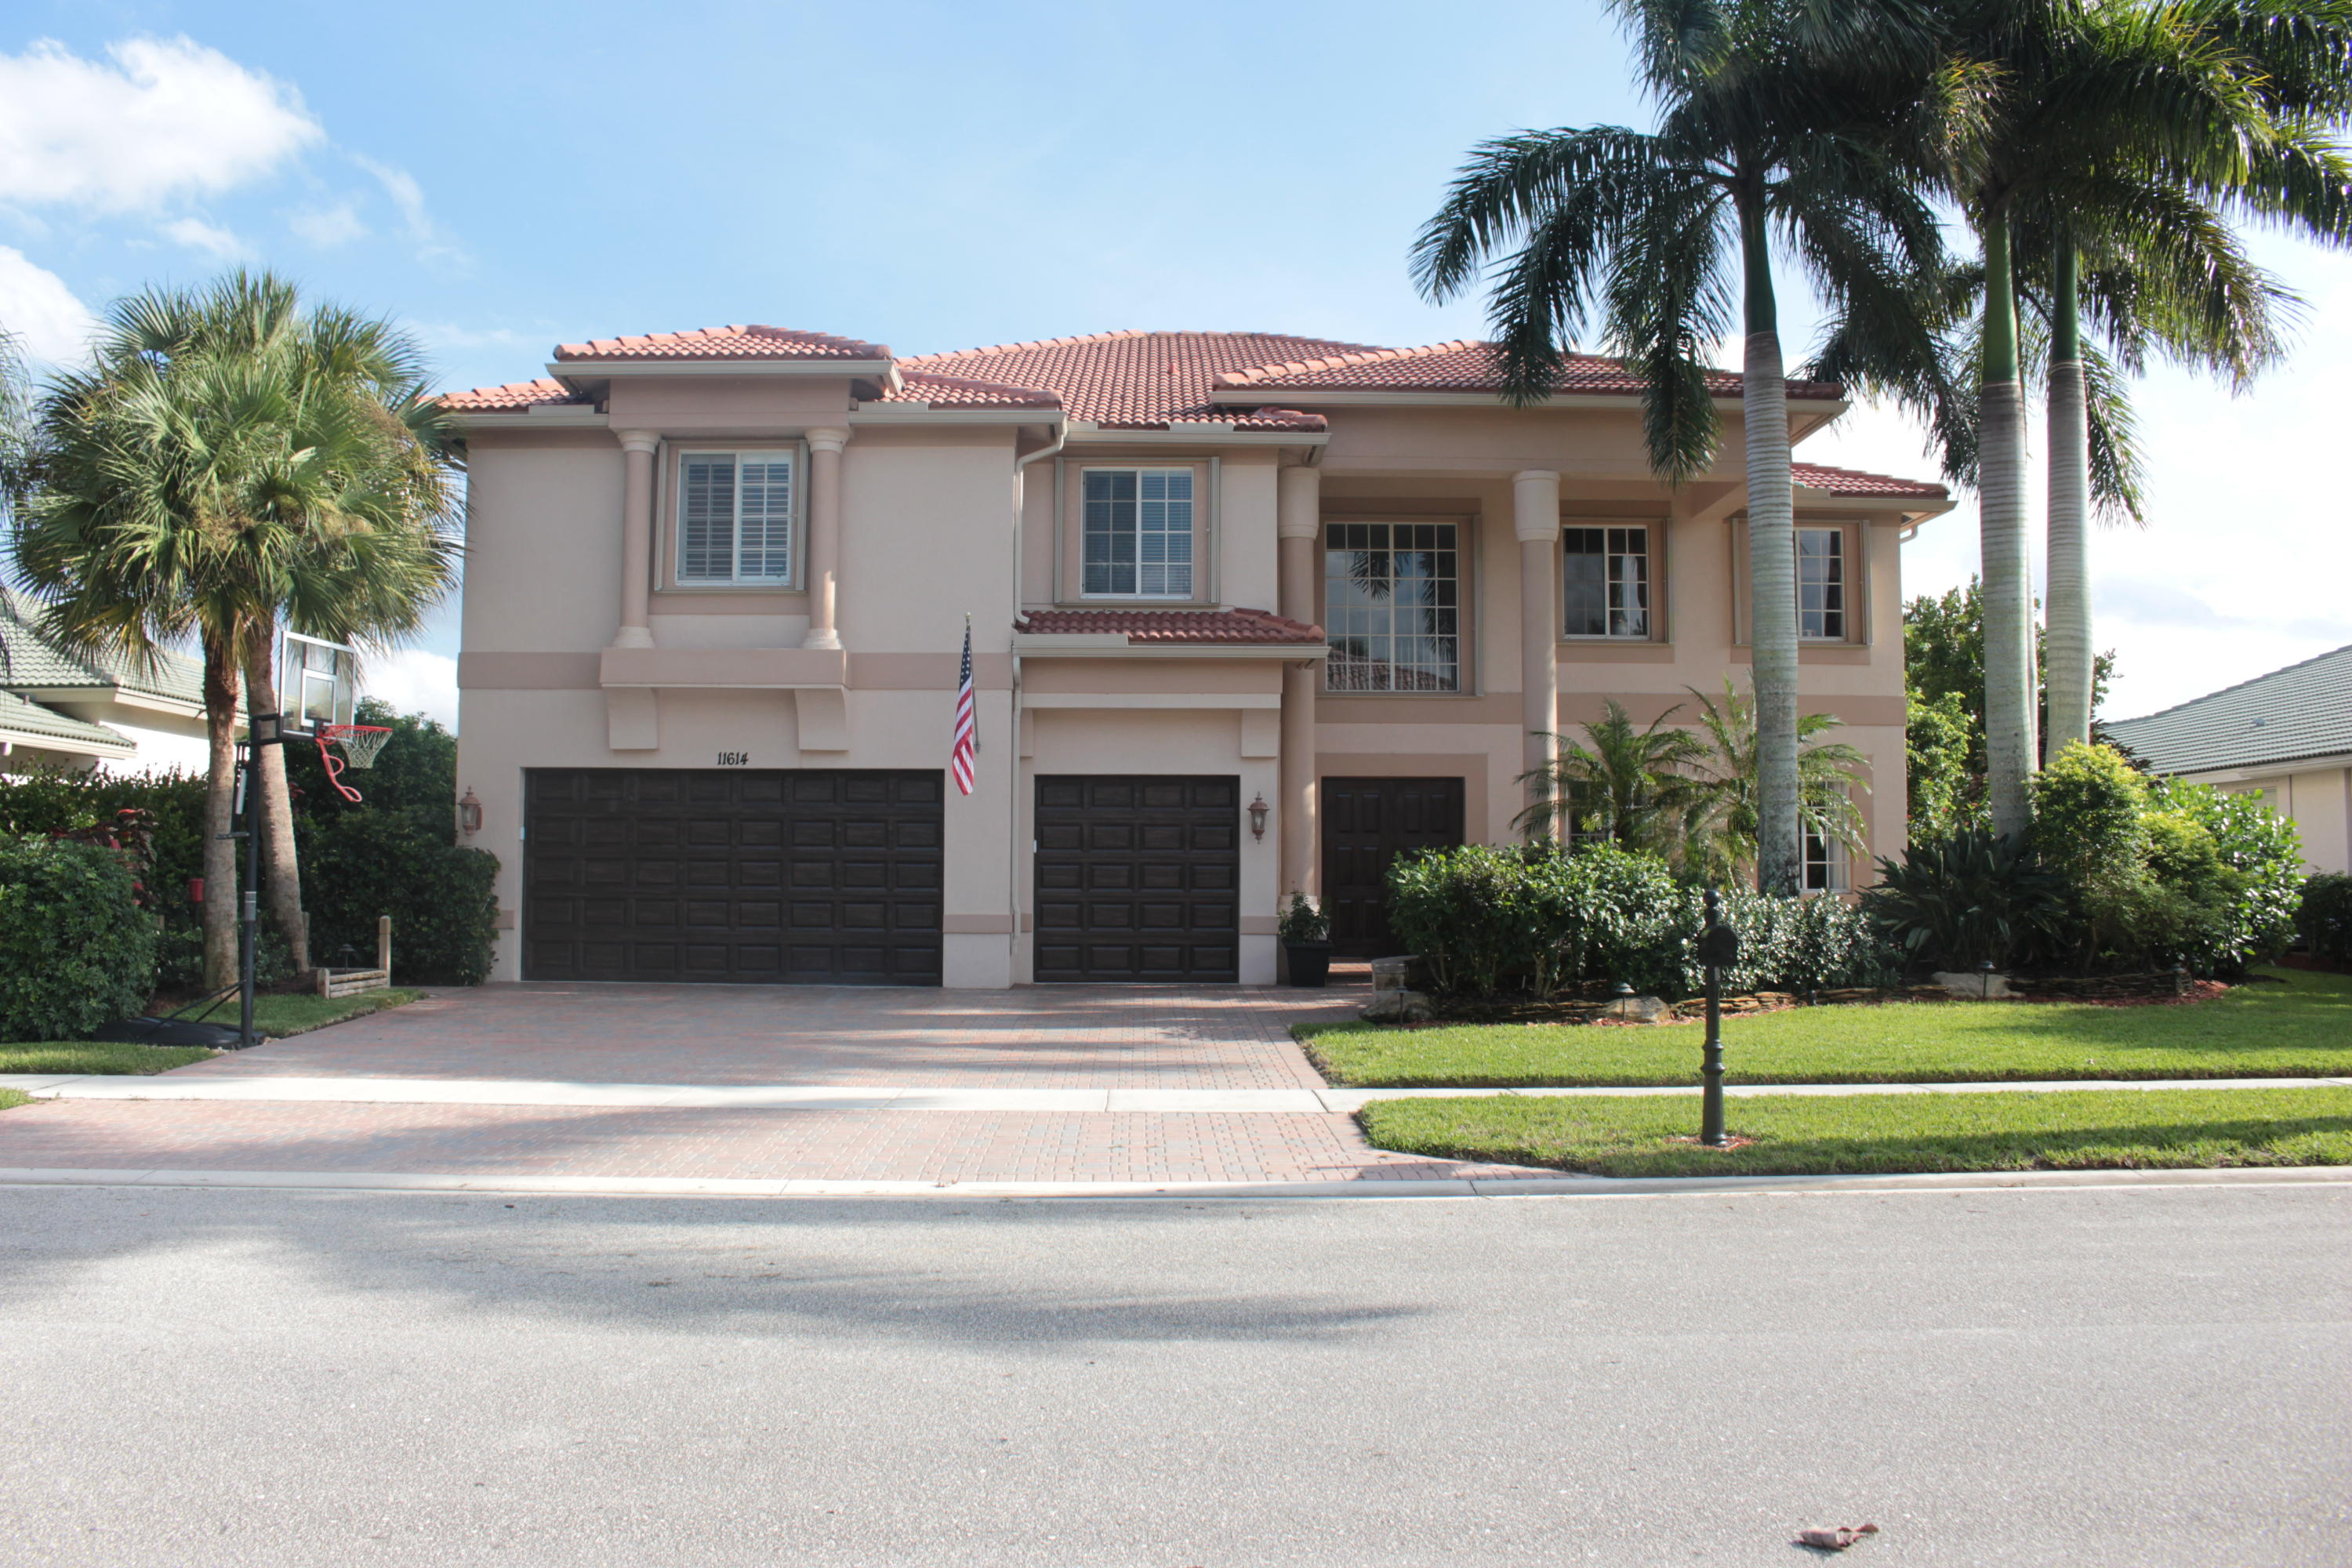 Home for sale in Grand Bay Estates Wellington Florida